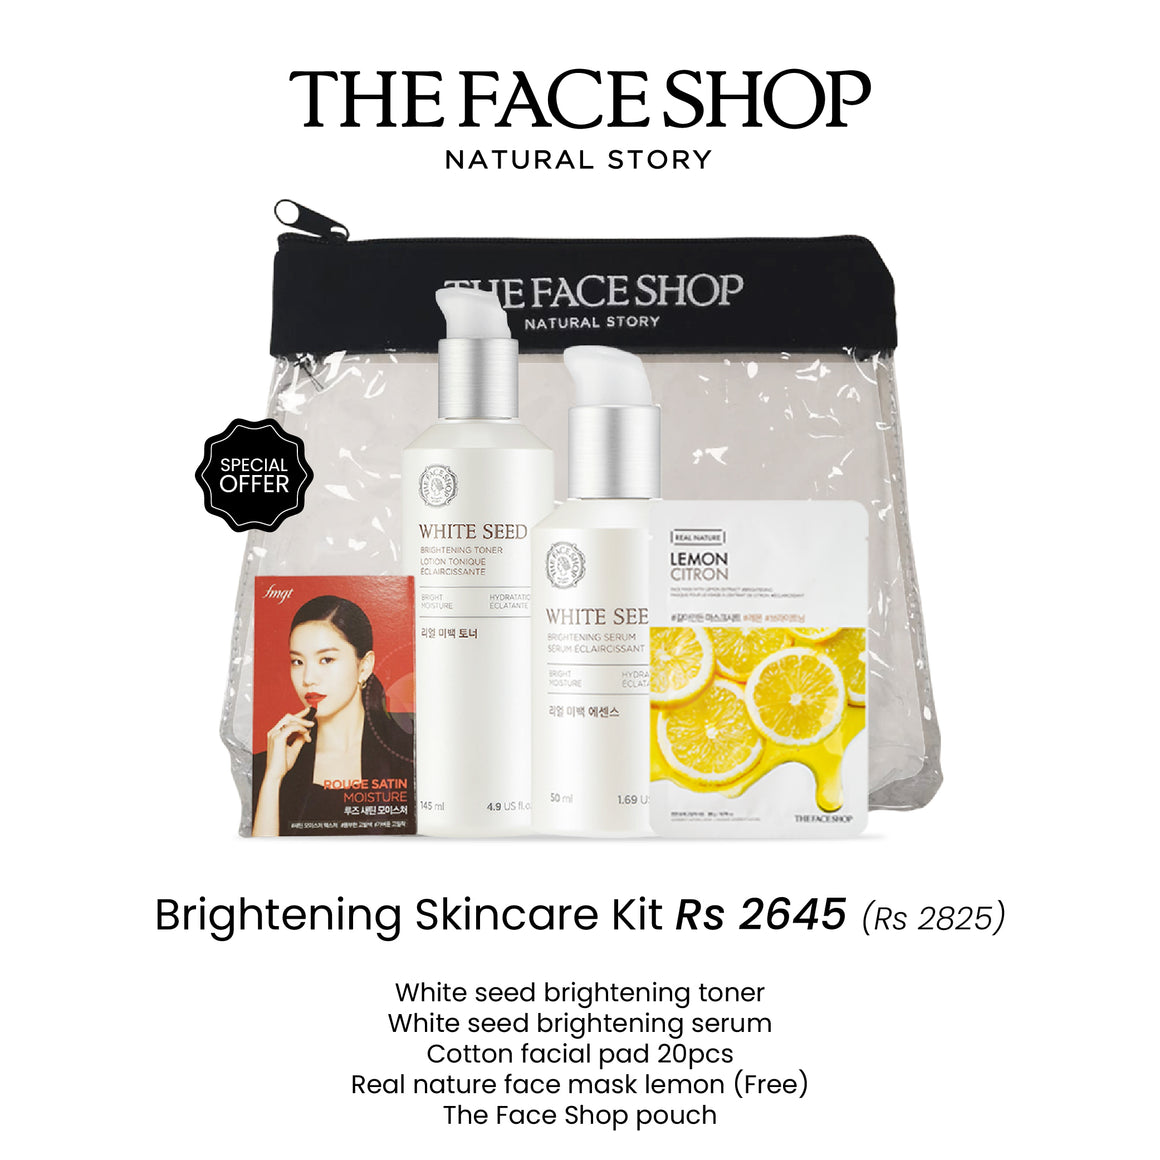 Brightening Skincare Kit